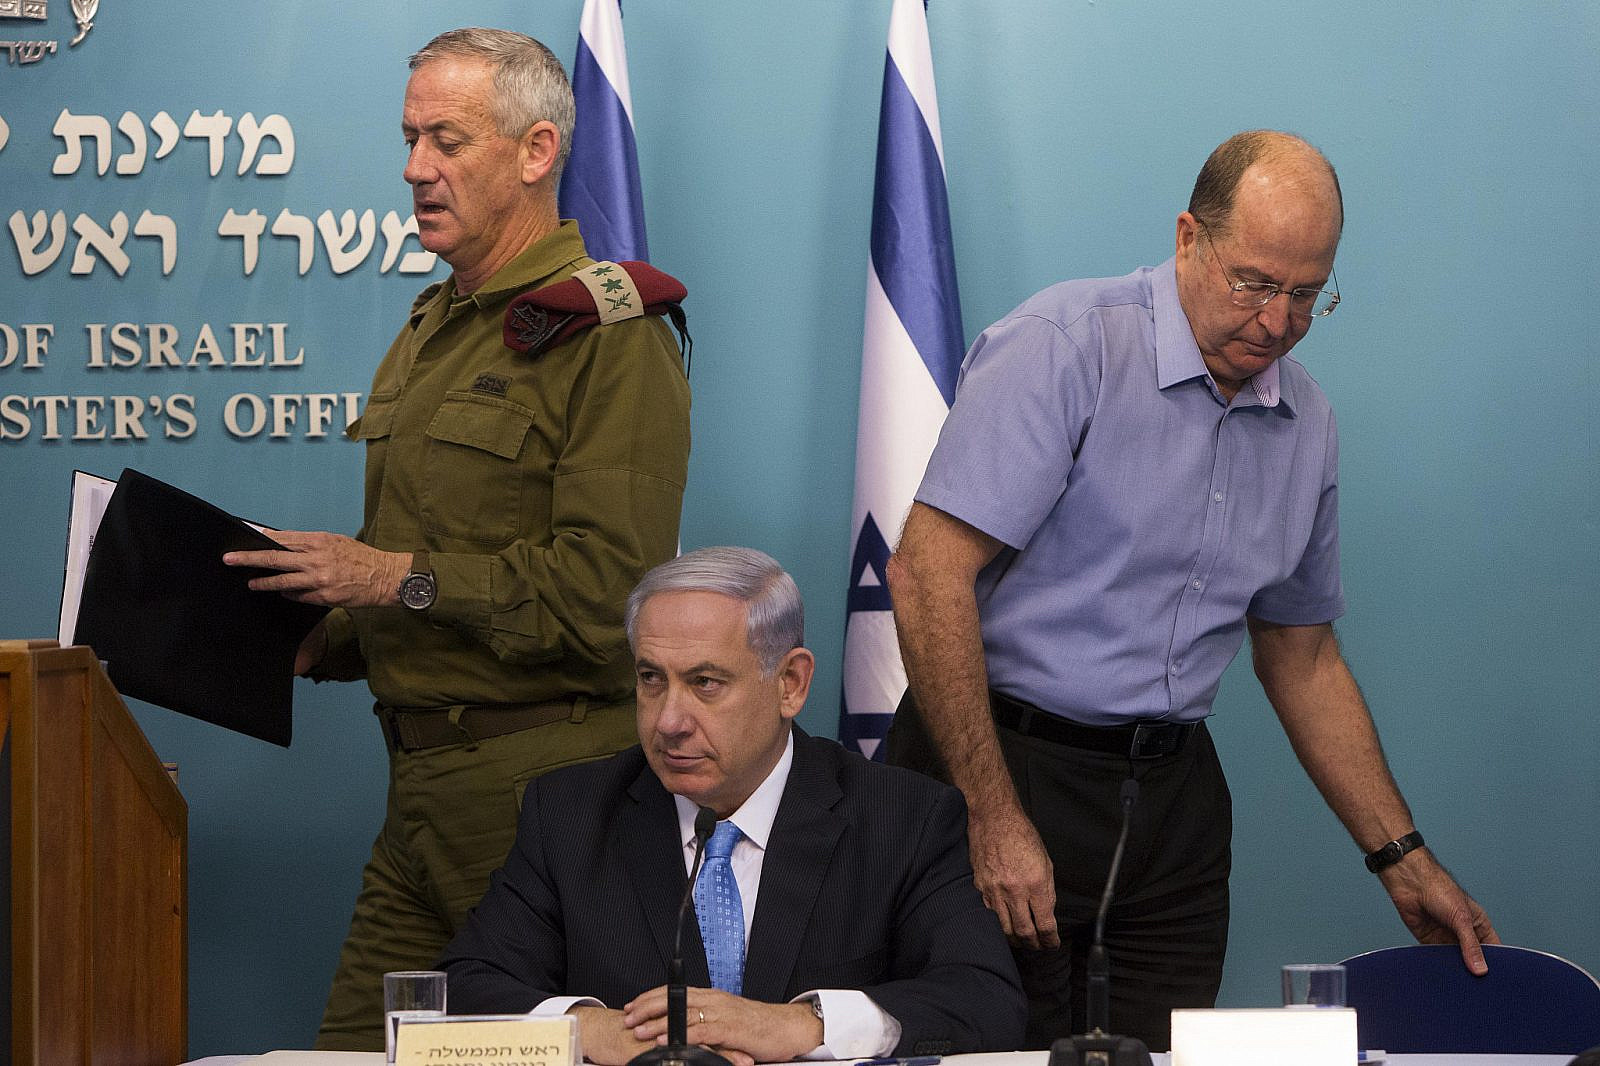 Israeli Prime Minister Benjamin Netanyahu (C), Minister of Defense Moshe Ya'alon (R) and IDF Chief of Staff Benny Gantz (L) seen at a press conference at the Prime Minister's office in Jerusalem, August 27, 2014. (Yonatan Sindel/Flash90).